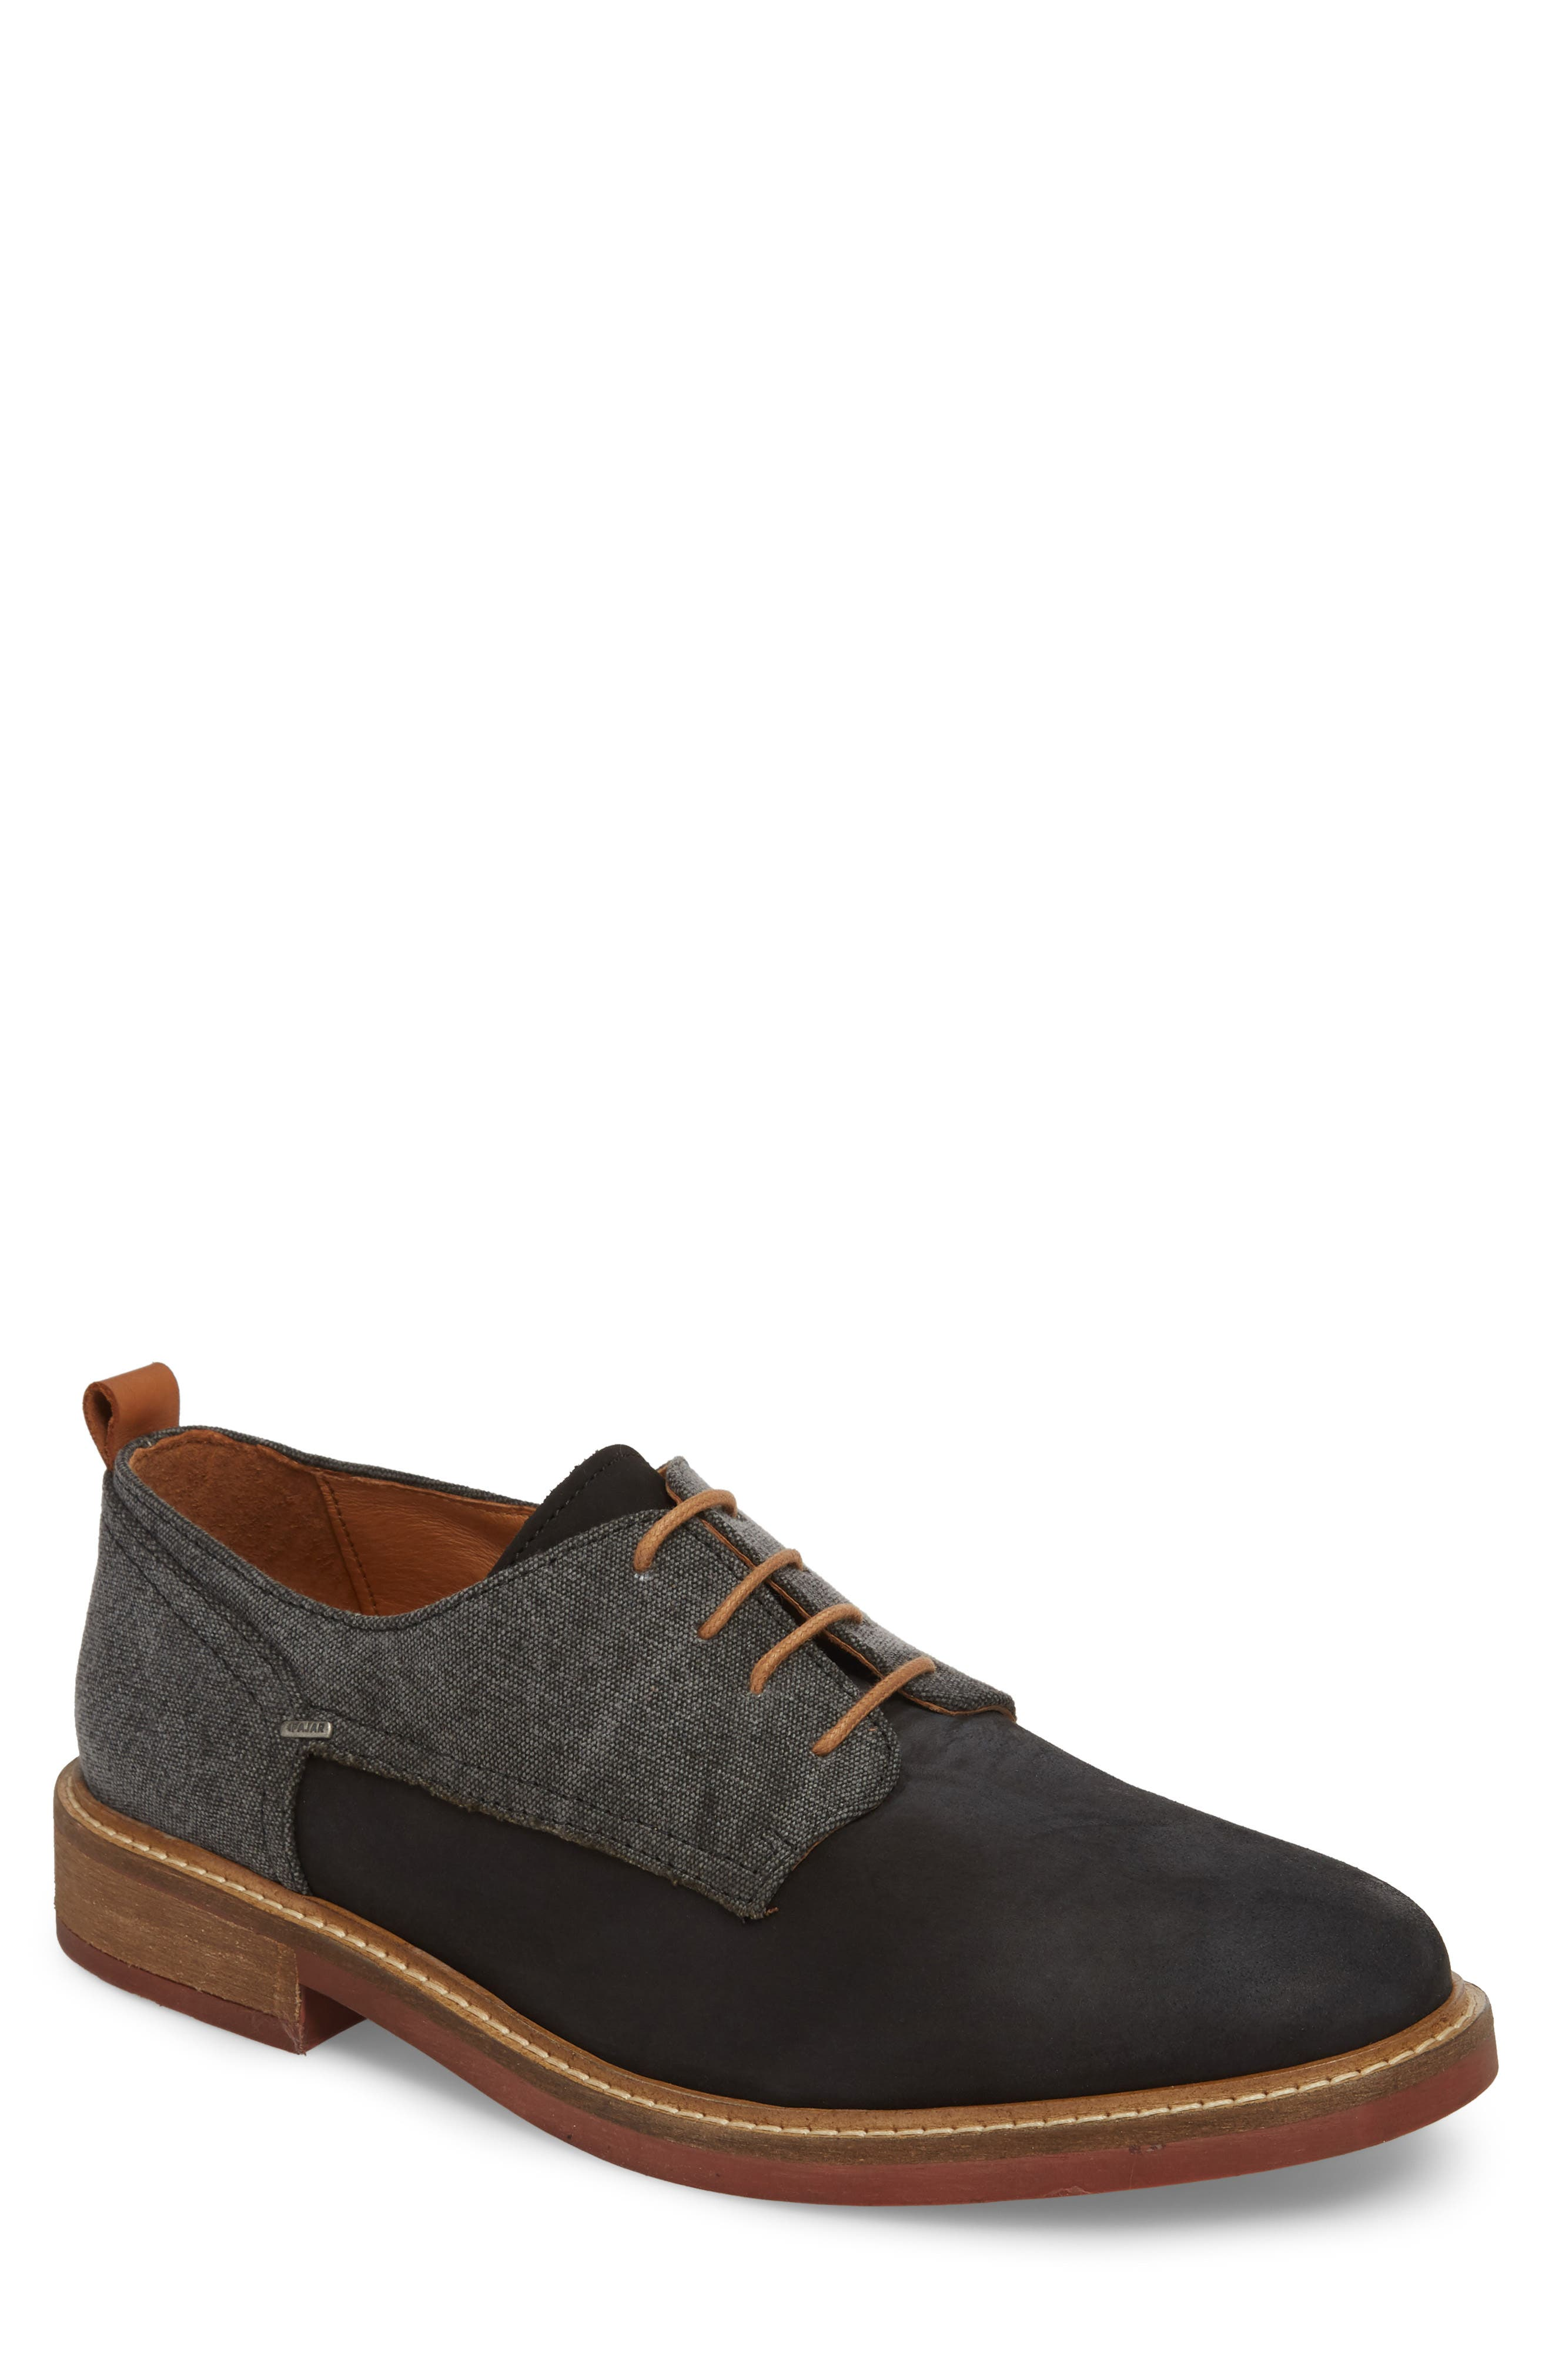 River Water Resistant Derby,                         Main,                         color, NERO